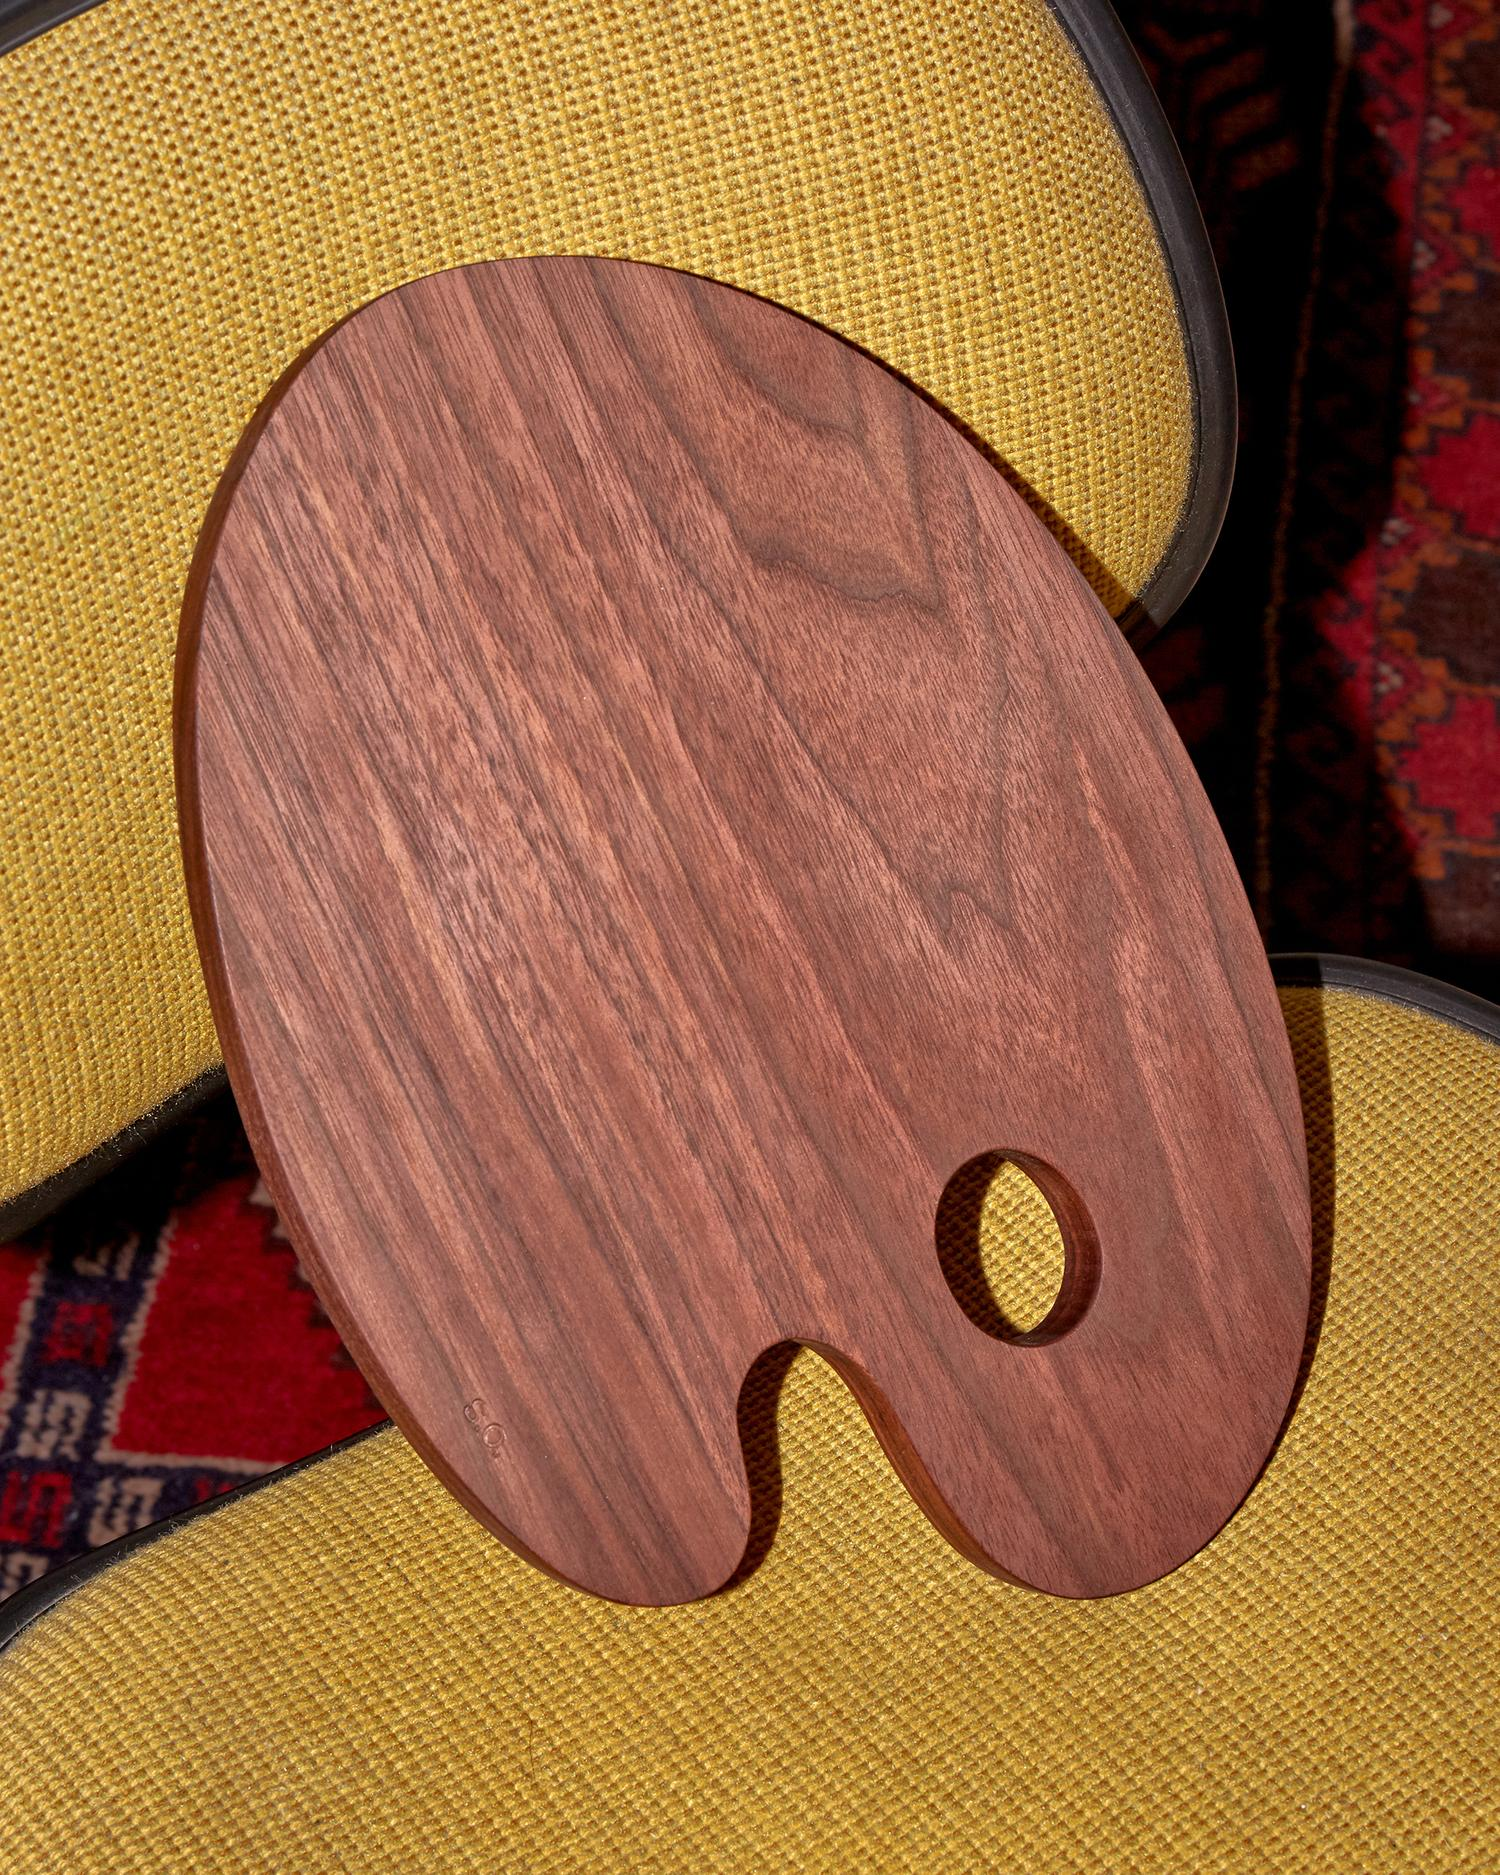 Spiritual Objects - Cutting Board